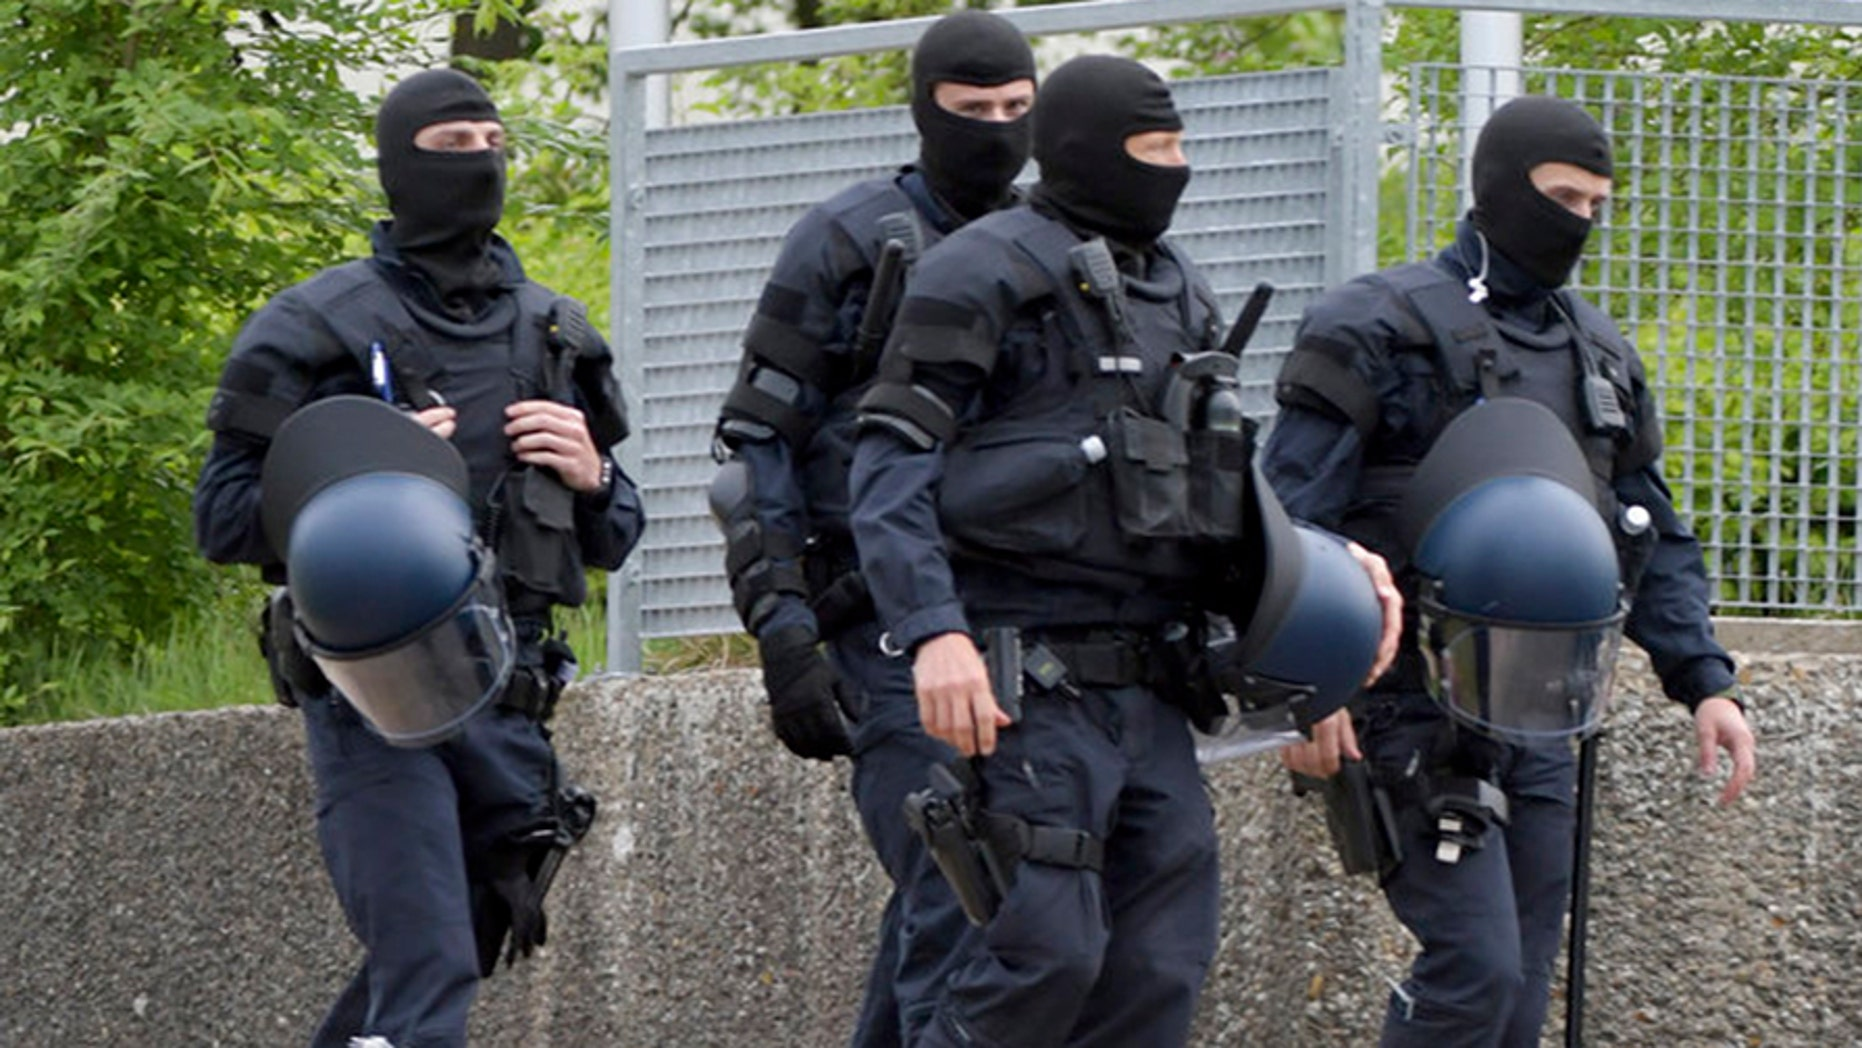 Police raided the refugee shelter in Ellwangen, Germany after they were pushed out days earlier by a mob of refugees.